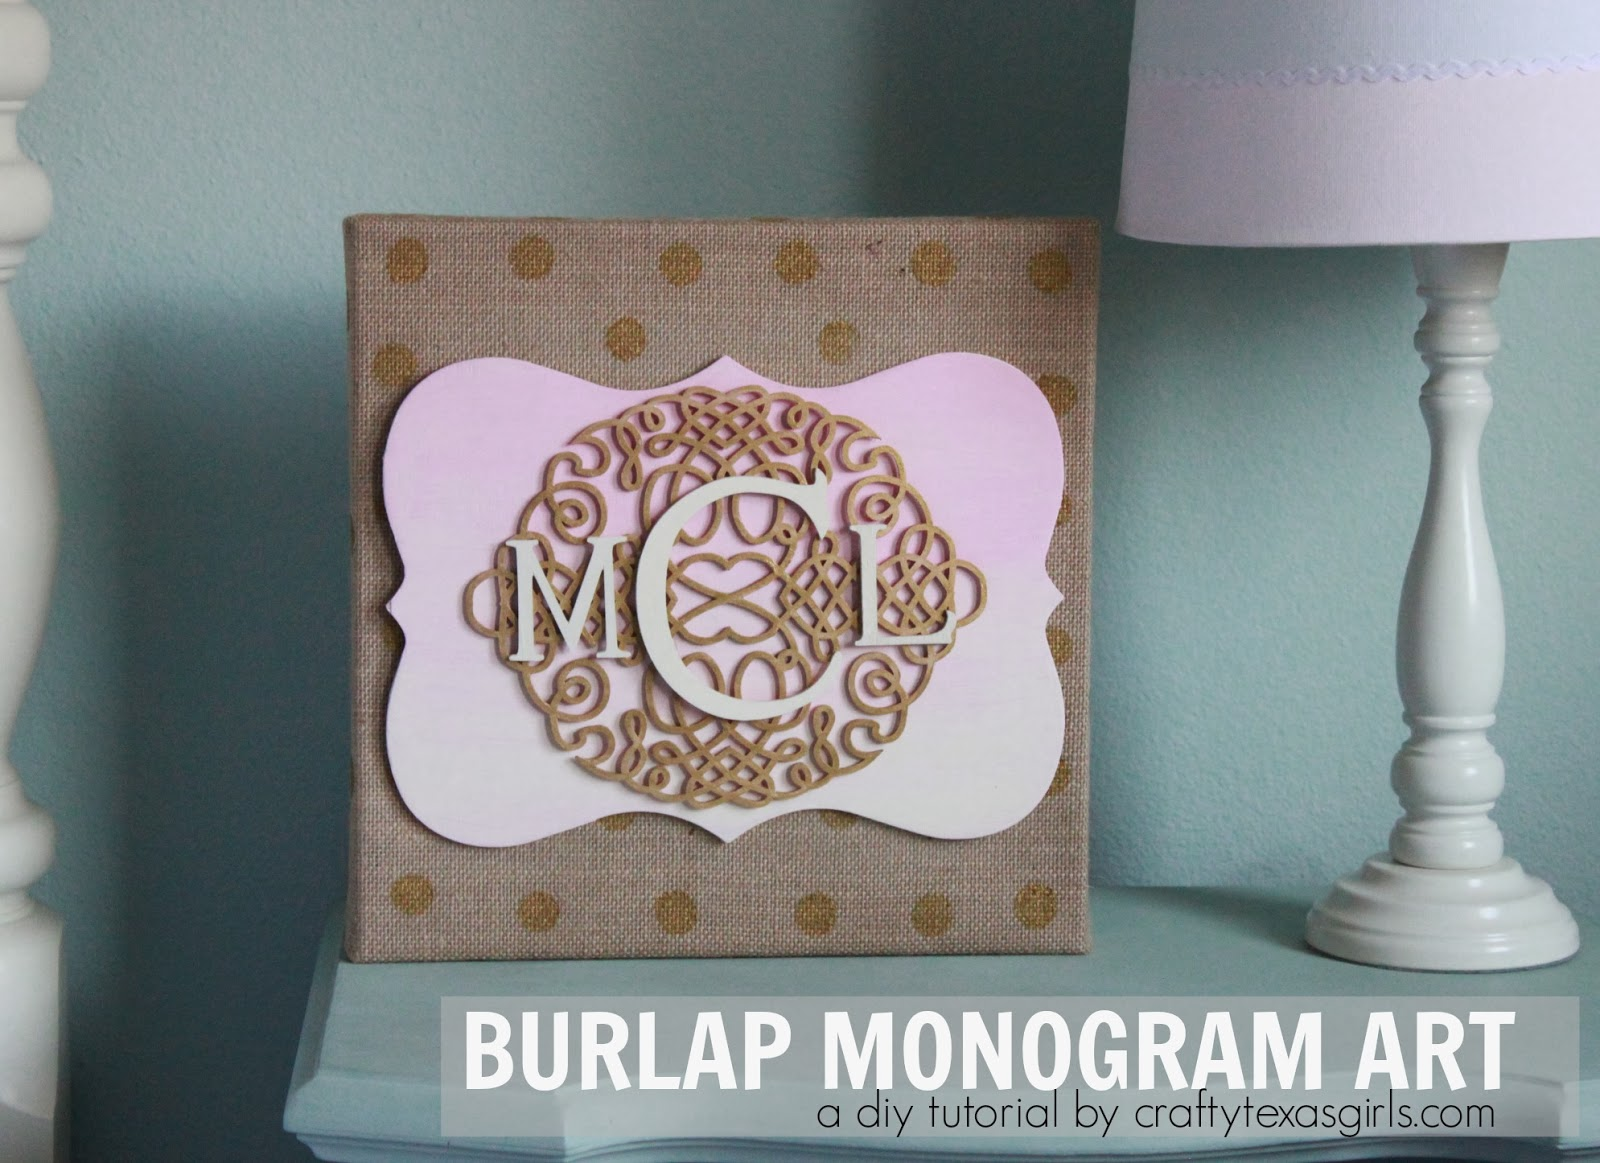 Burlap Monogram Art Craftytexasgirls